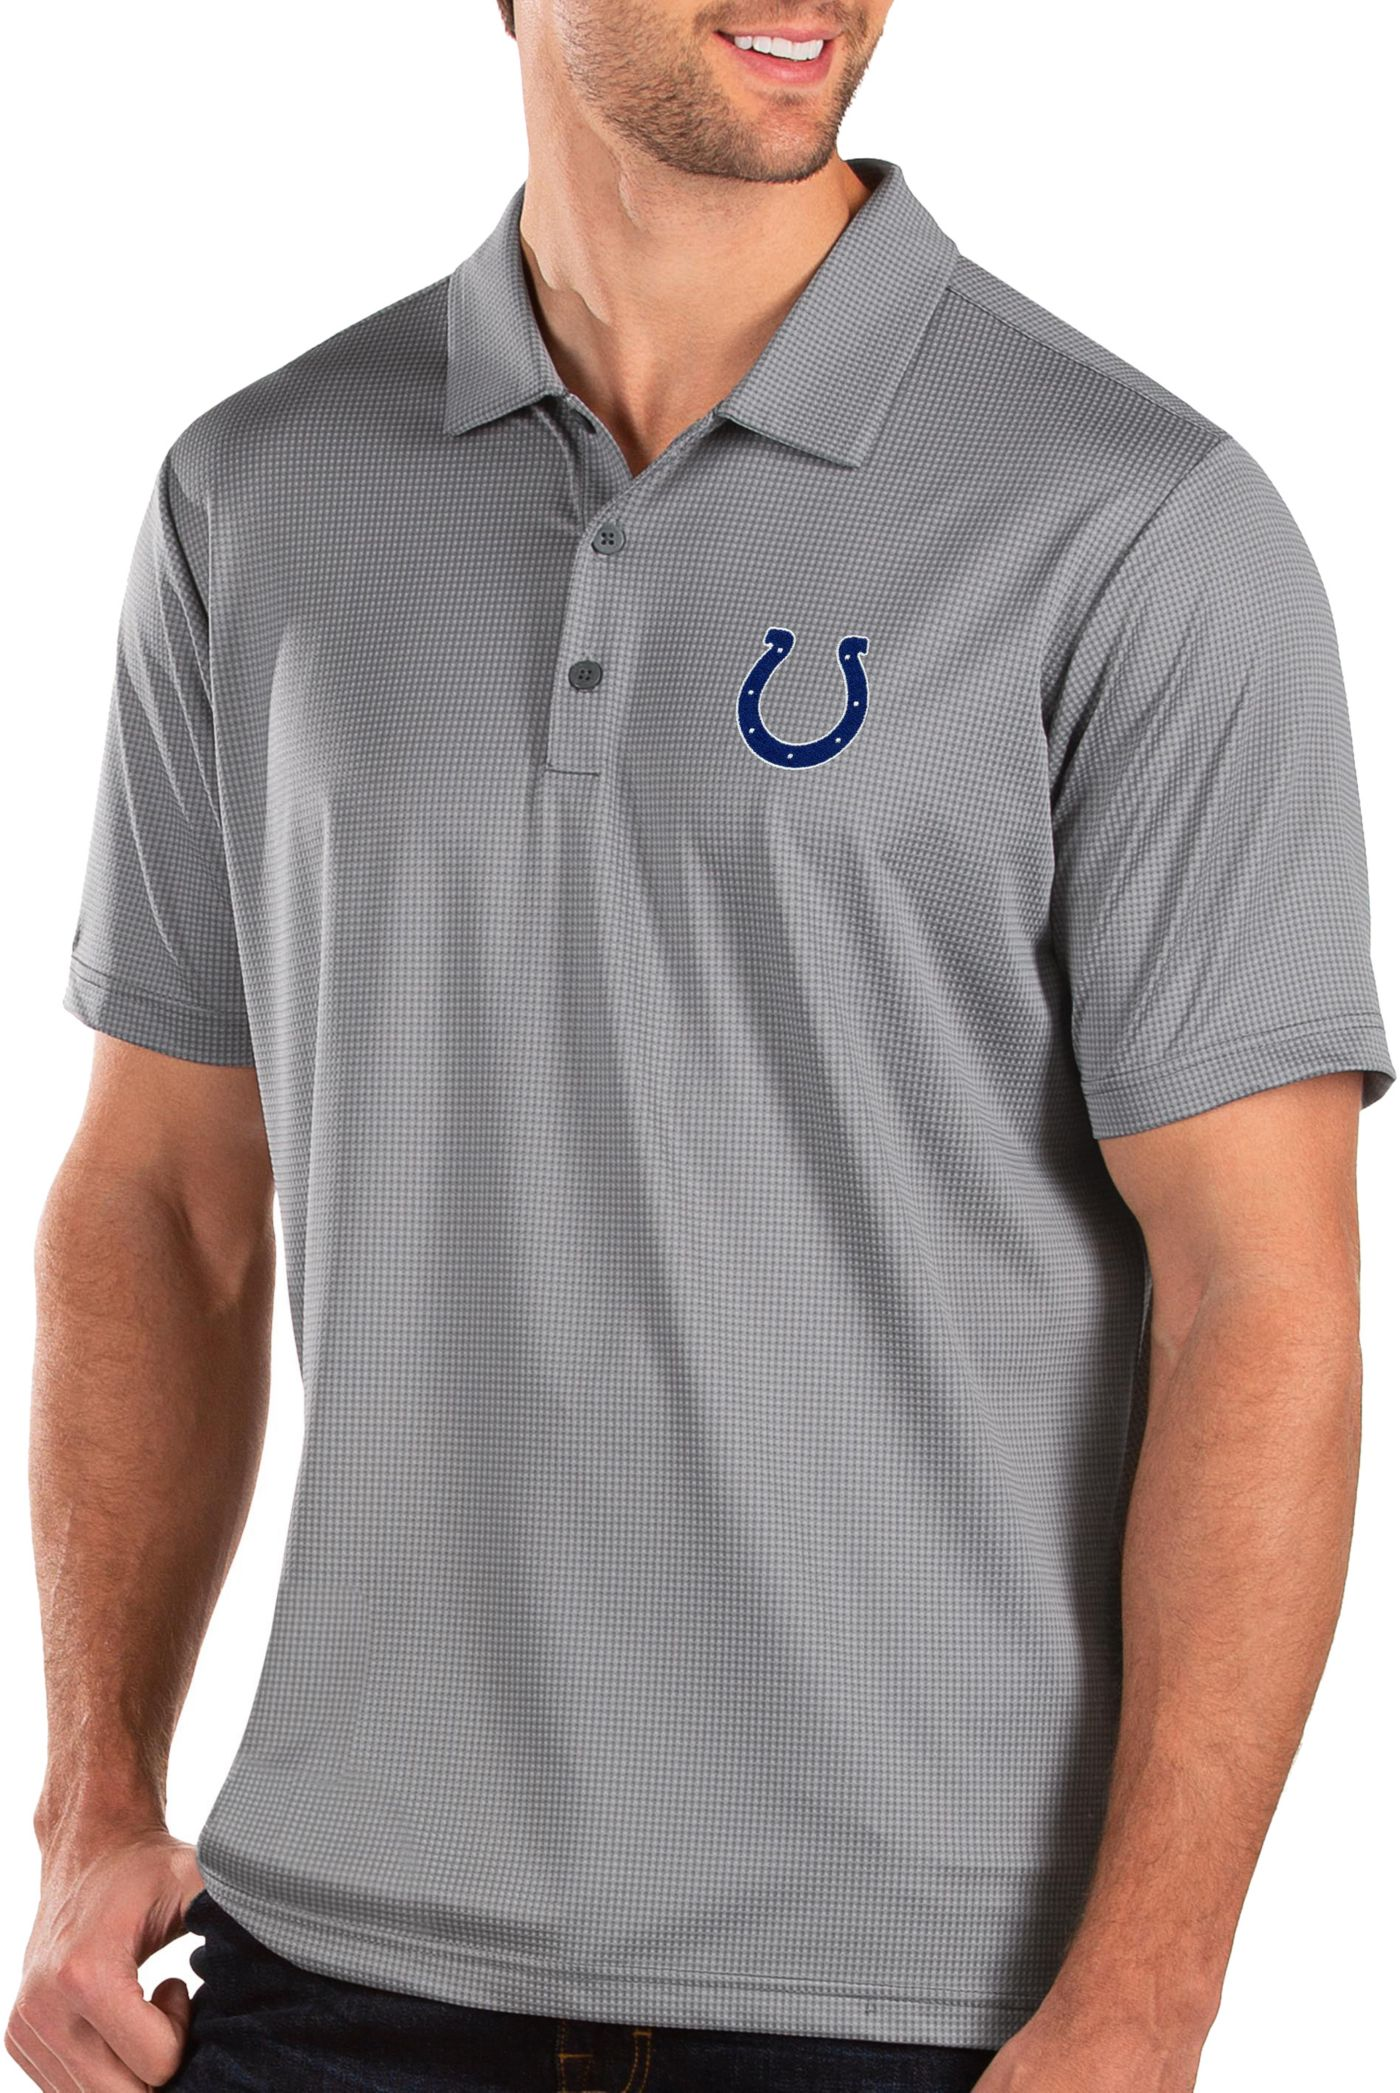 Antigua Men's Indianapolis Colts Balance Grey Polo